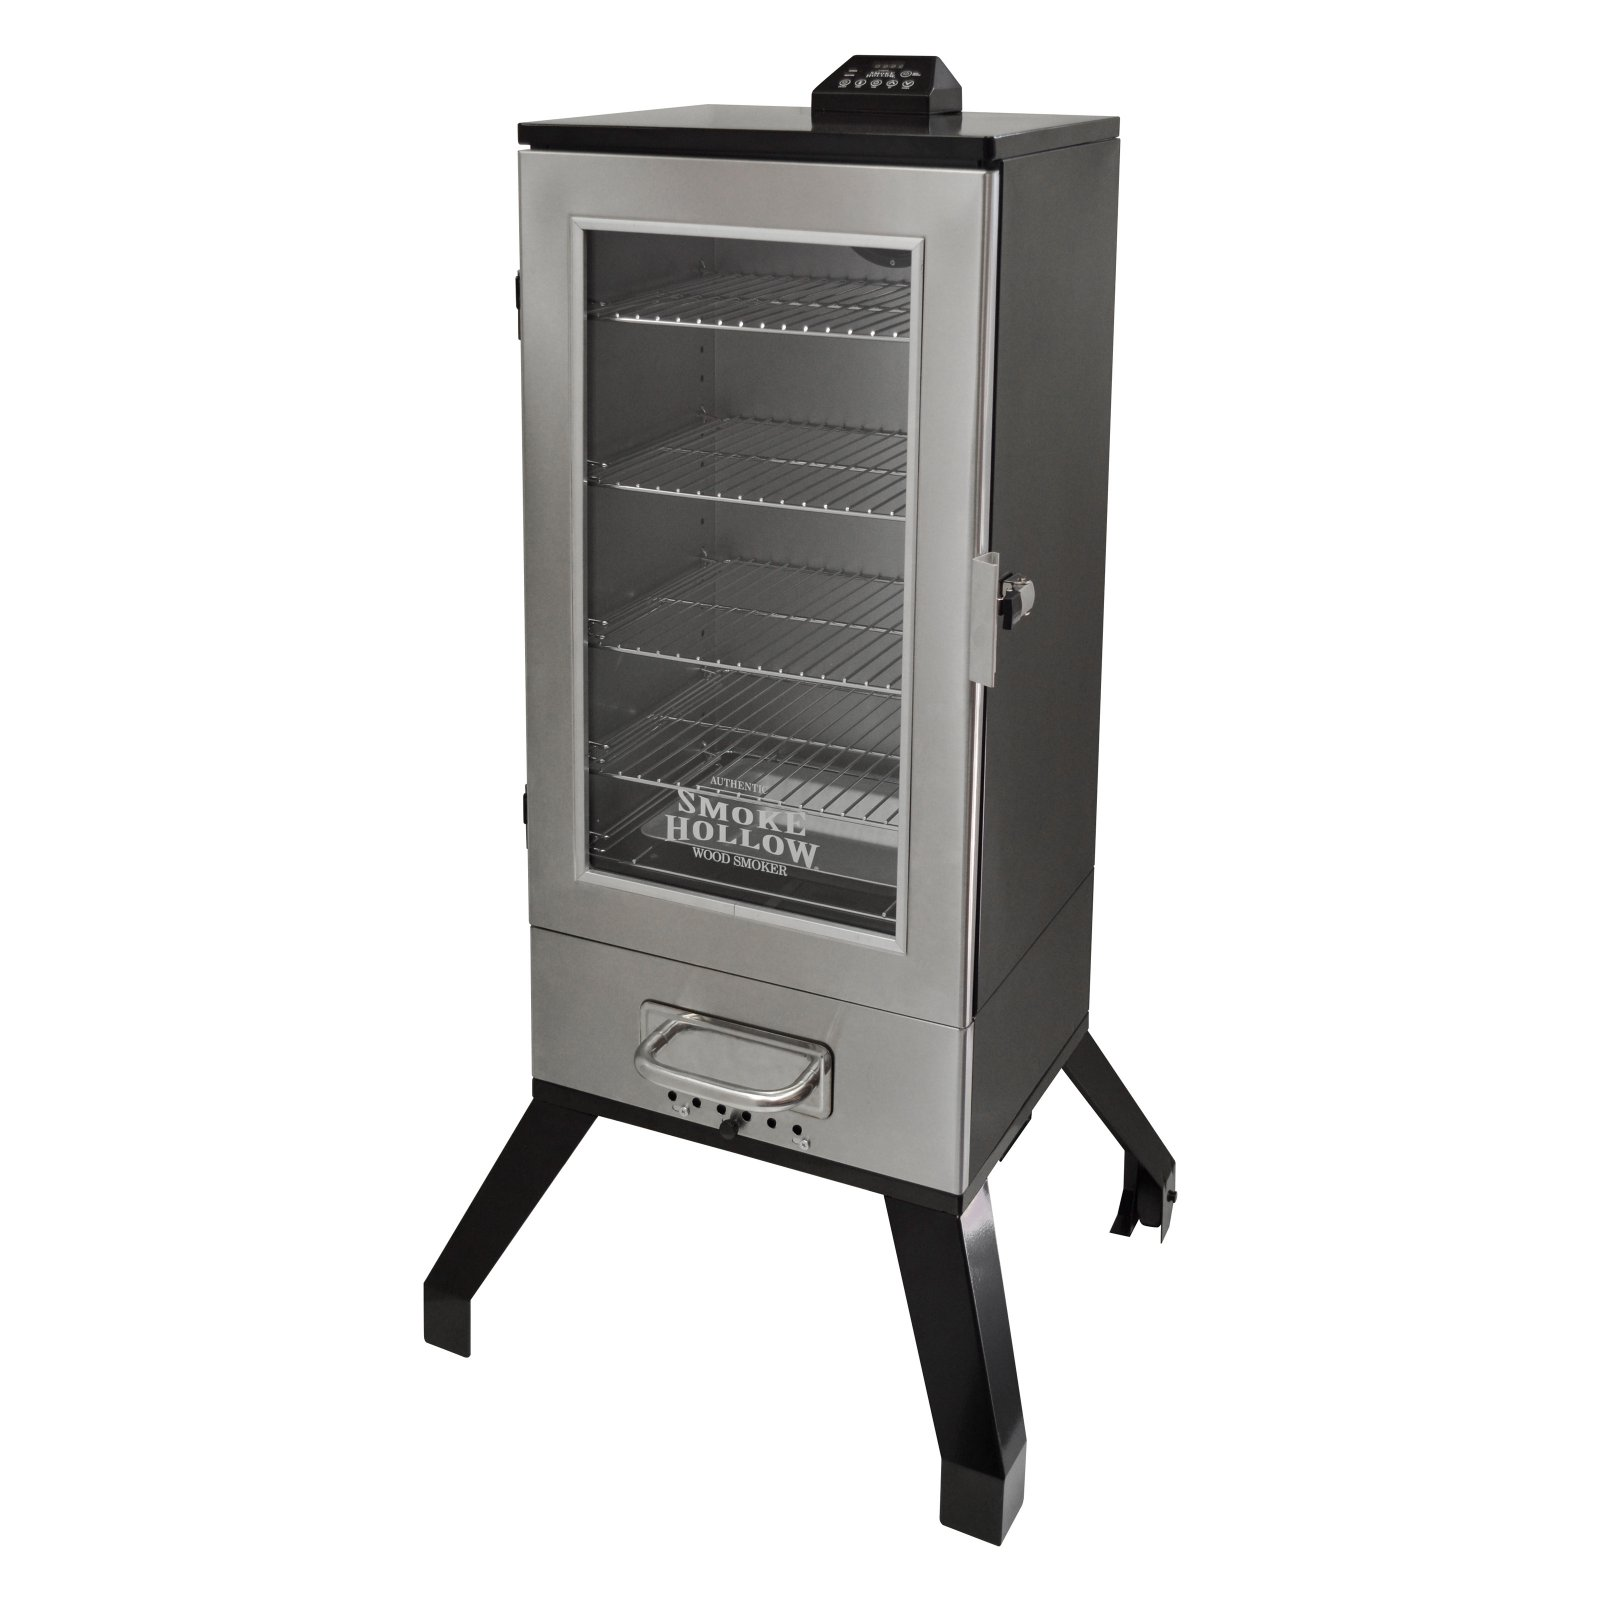 Smoke Hollow 36 in. Digital Electric Smoker with Window